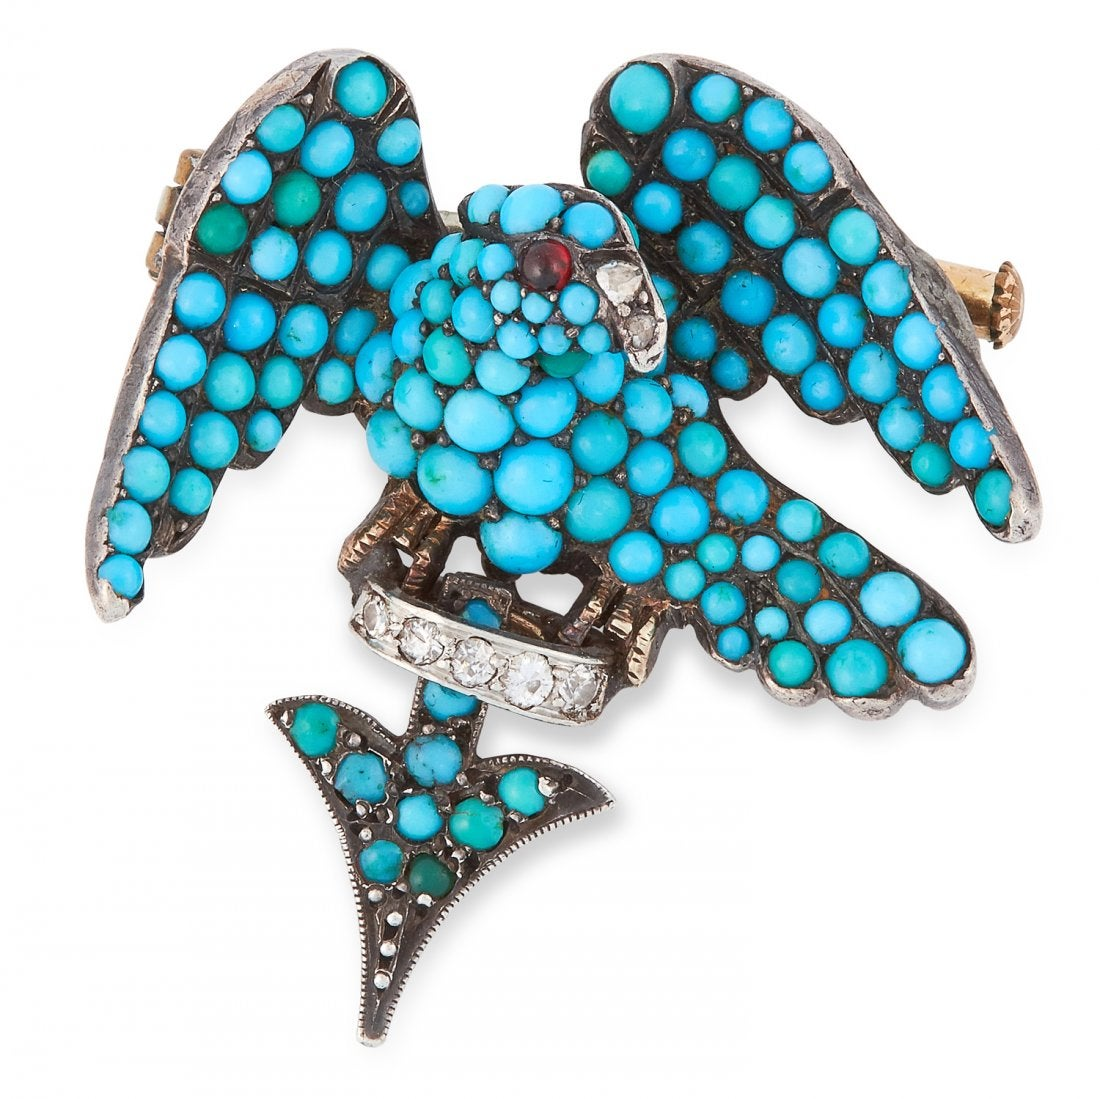 AN ANTIQUE TURQUOISE, GARNET AND DIAMOND EAGLE BROOCH, 19TH CENTURY